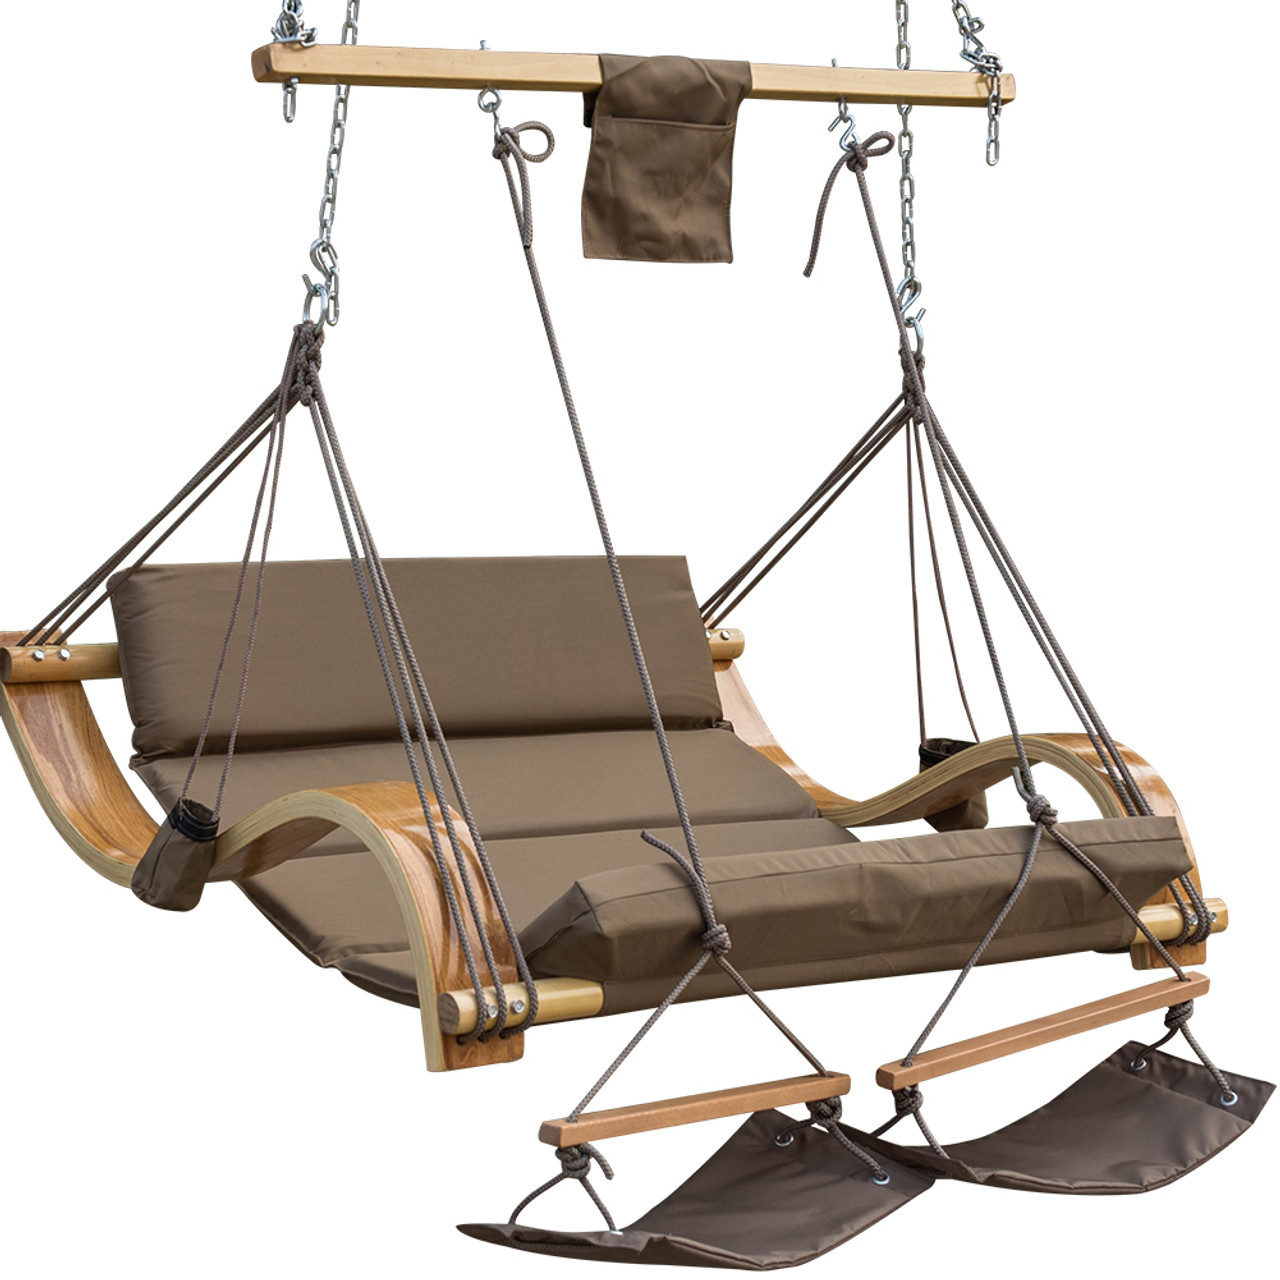 Beau Lazy Daze Hammocks Deluxe Oversized Double Hanging Rope Chair Cotton Padded  Swing Chair Wood Arc Hammock ...